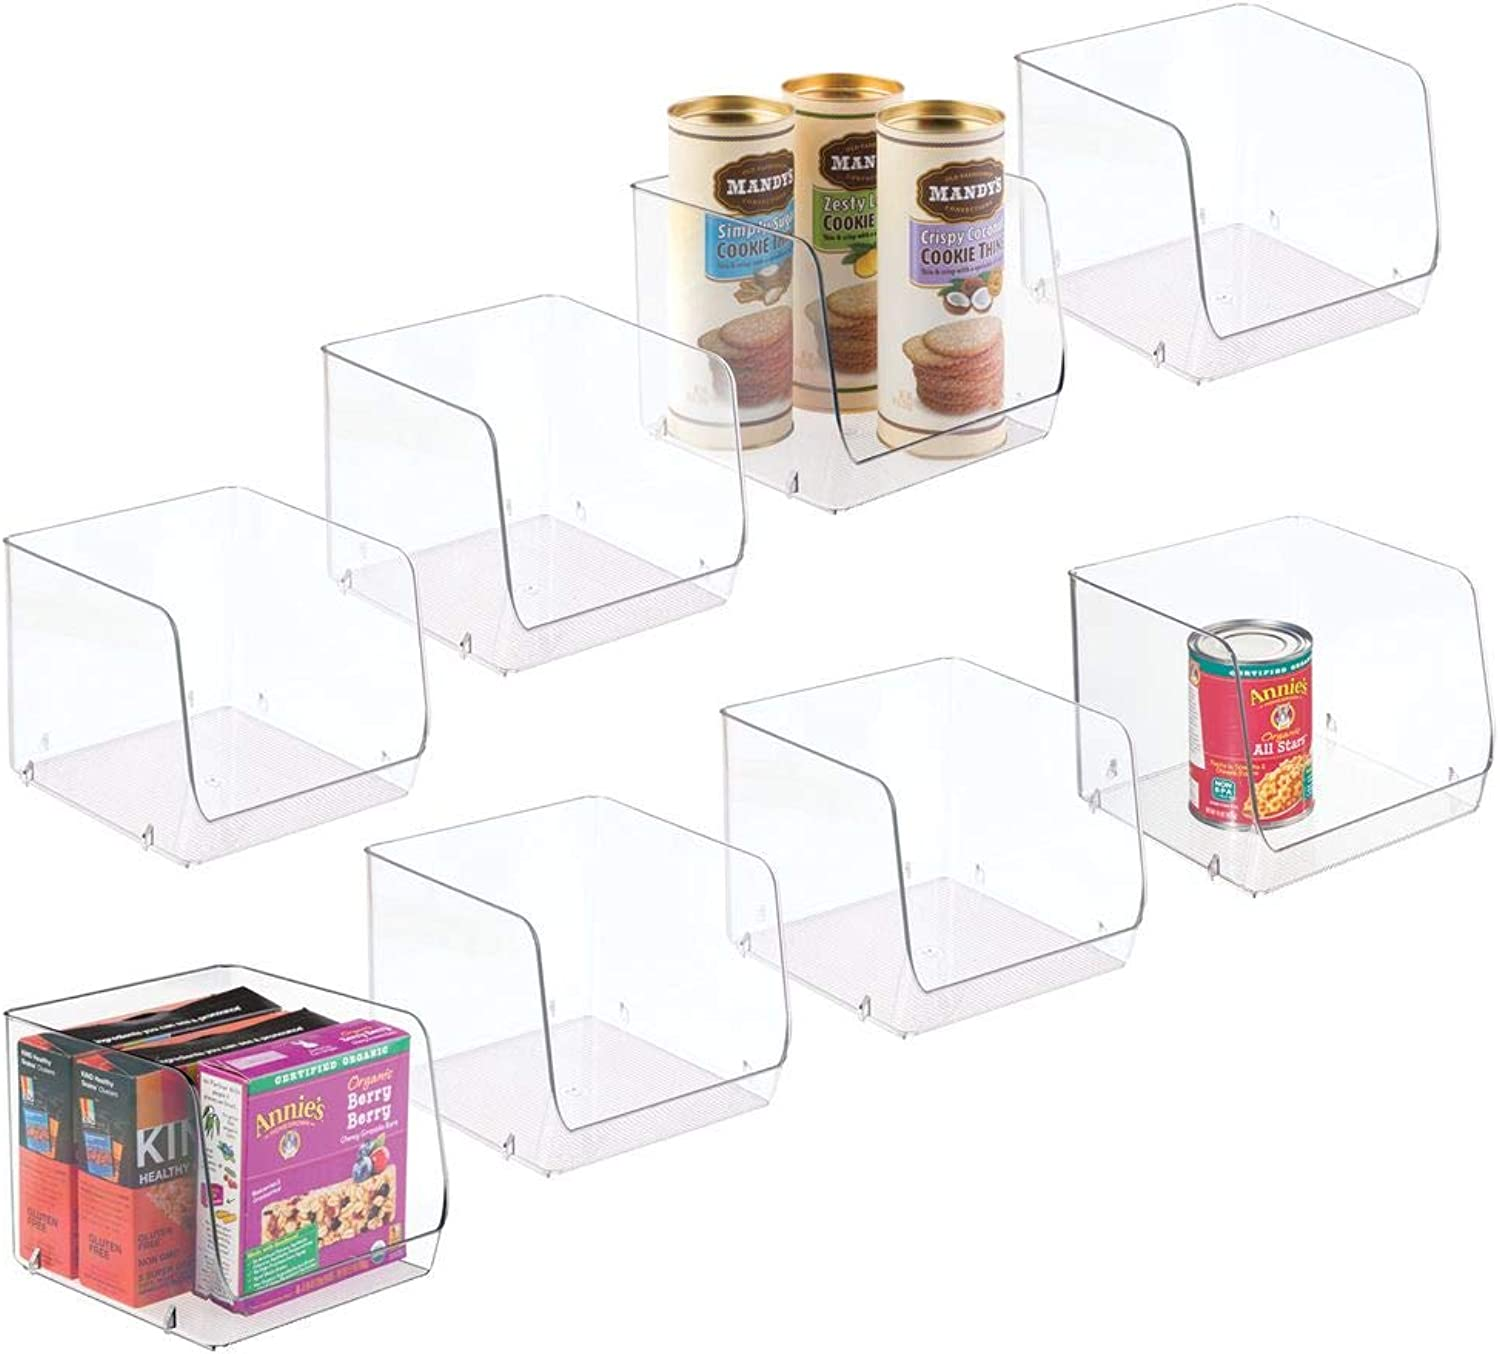 MDesign Large Household Stackable Plastic Food Storage Organizer Bin Basket with Wide Open Front for Kitchen Cabinets, Pantry, Offices, Closets, Bedrooms, Bathrooms - Cube - 7.75  Wide, 8 Pack - Clear